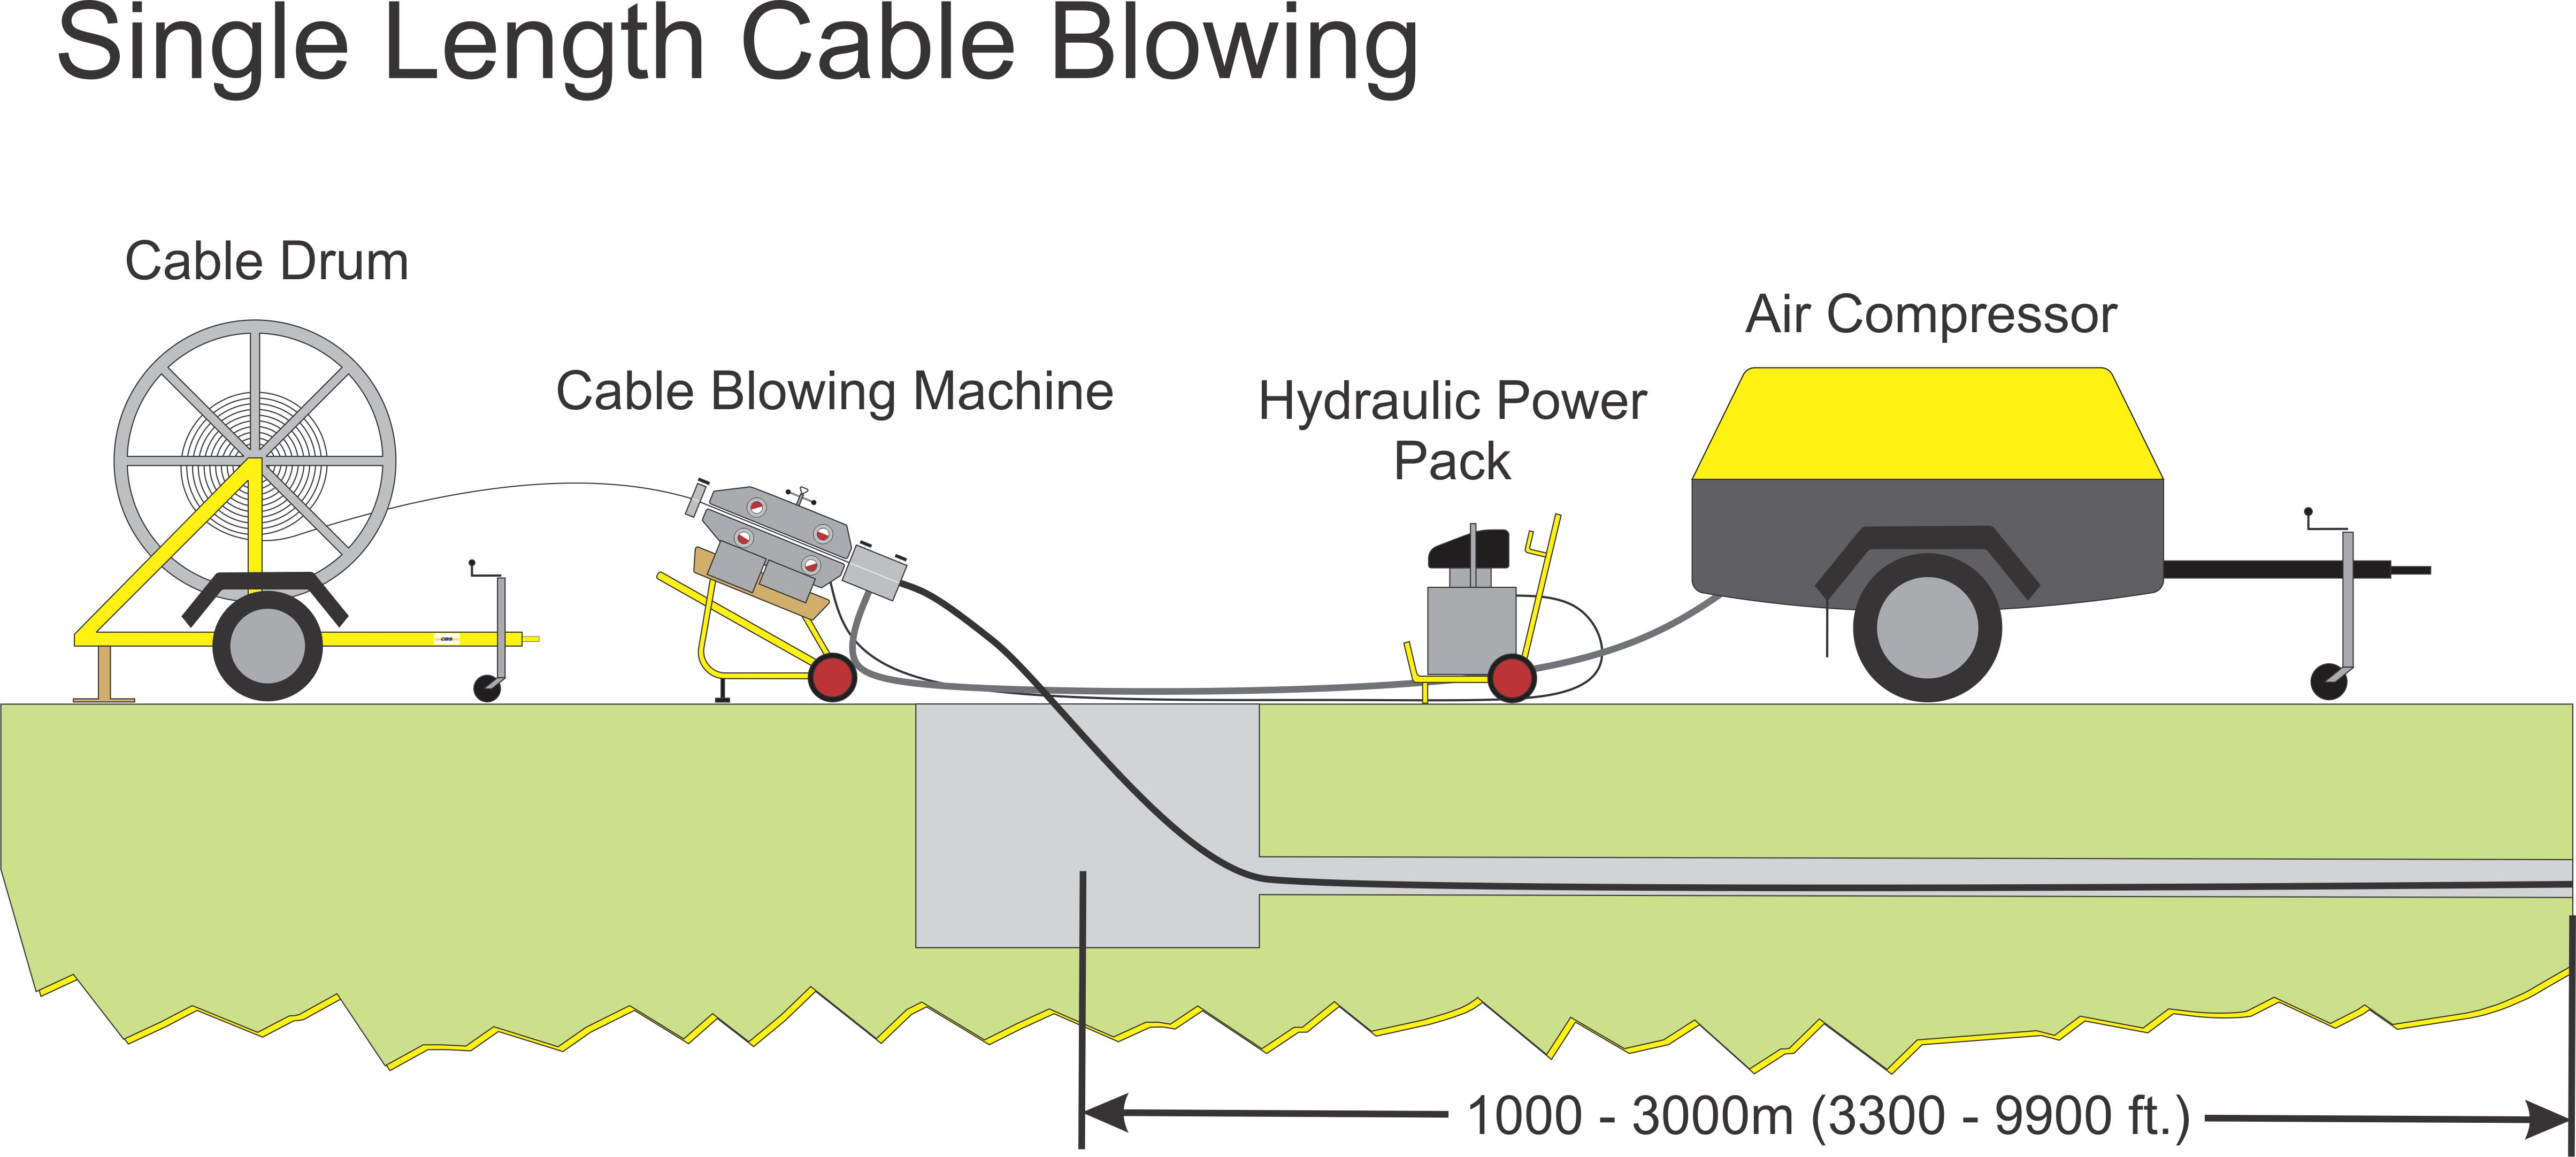 Tornado Cable Blowing Machine General Products Kt Llc Fiber Optic Schematic 89000